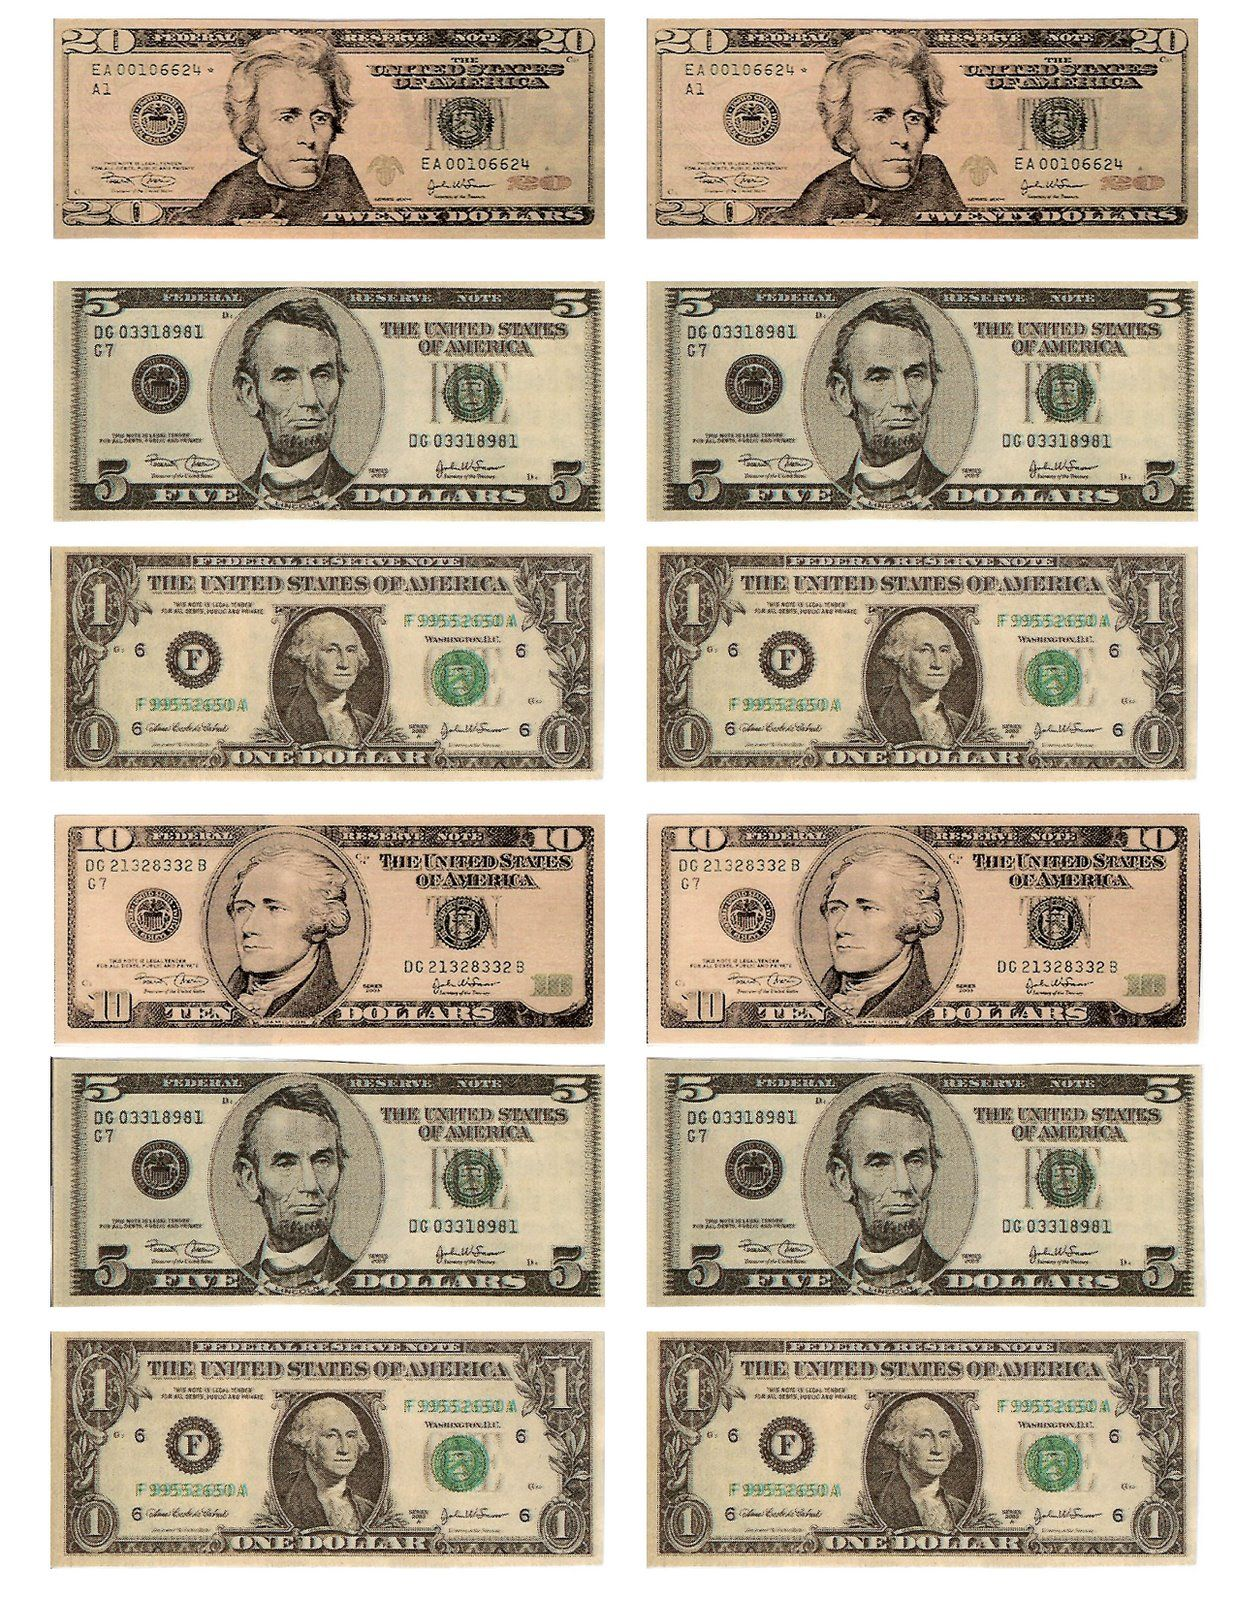 Legal Free Printable Money For Teaching The Kids About American Money Or Using As Reward